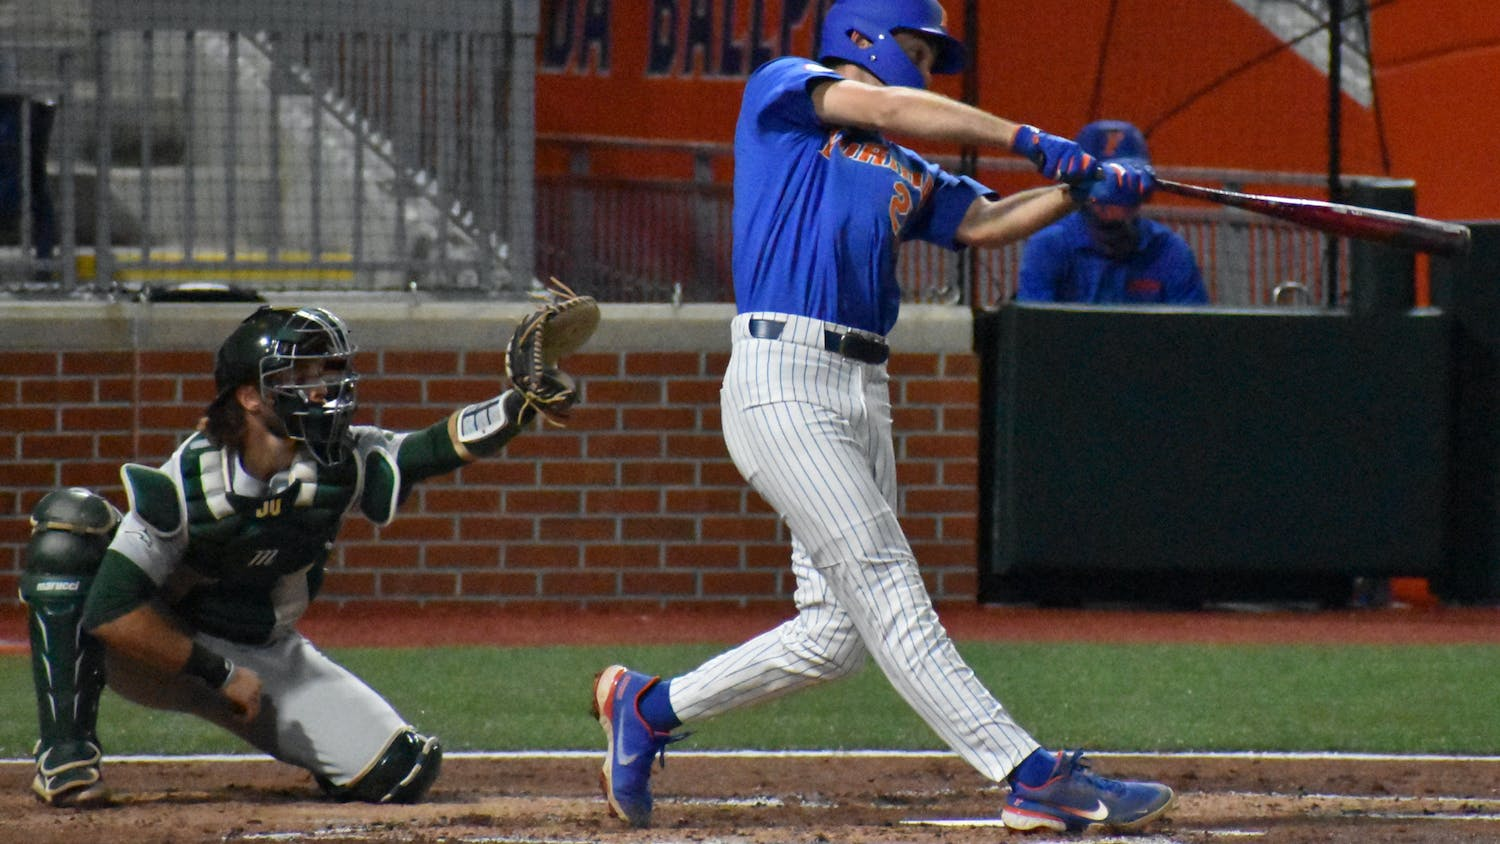 Florida's Sterlin Thompson swings against Jacksonville on March 13. Thompson tallied three hits and an eighth-inning RBI in Florida's 7-2 victory over Alabama in the conference tournament Thursday.